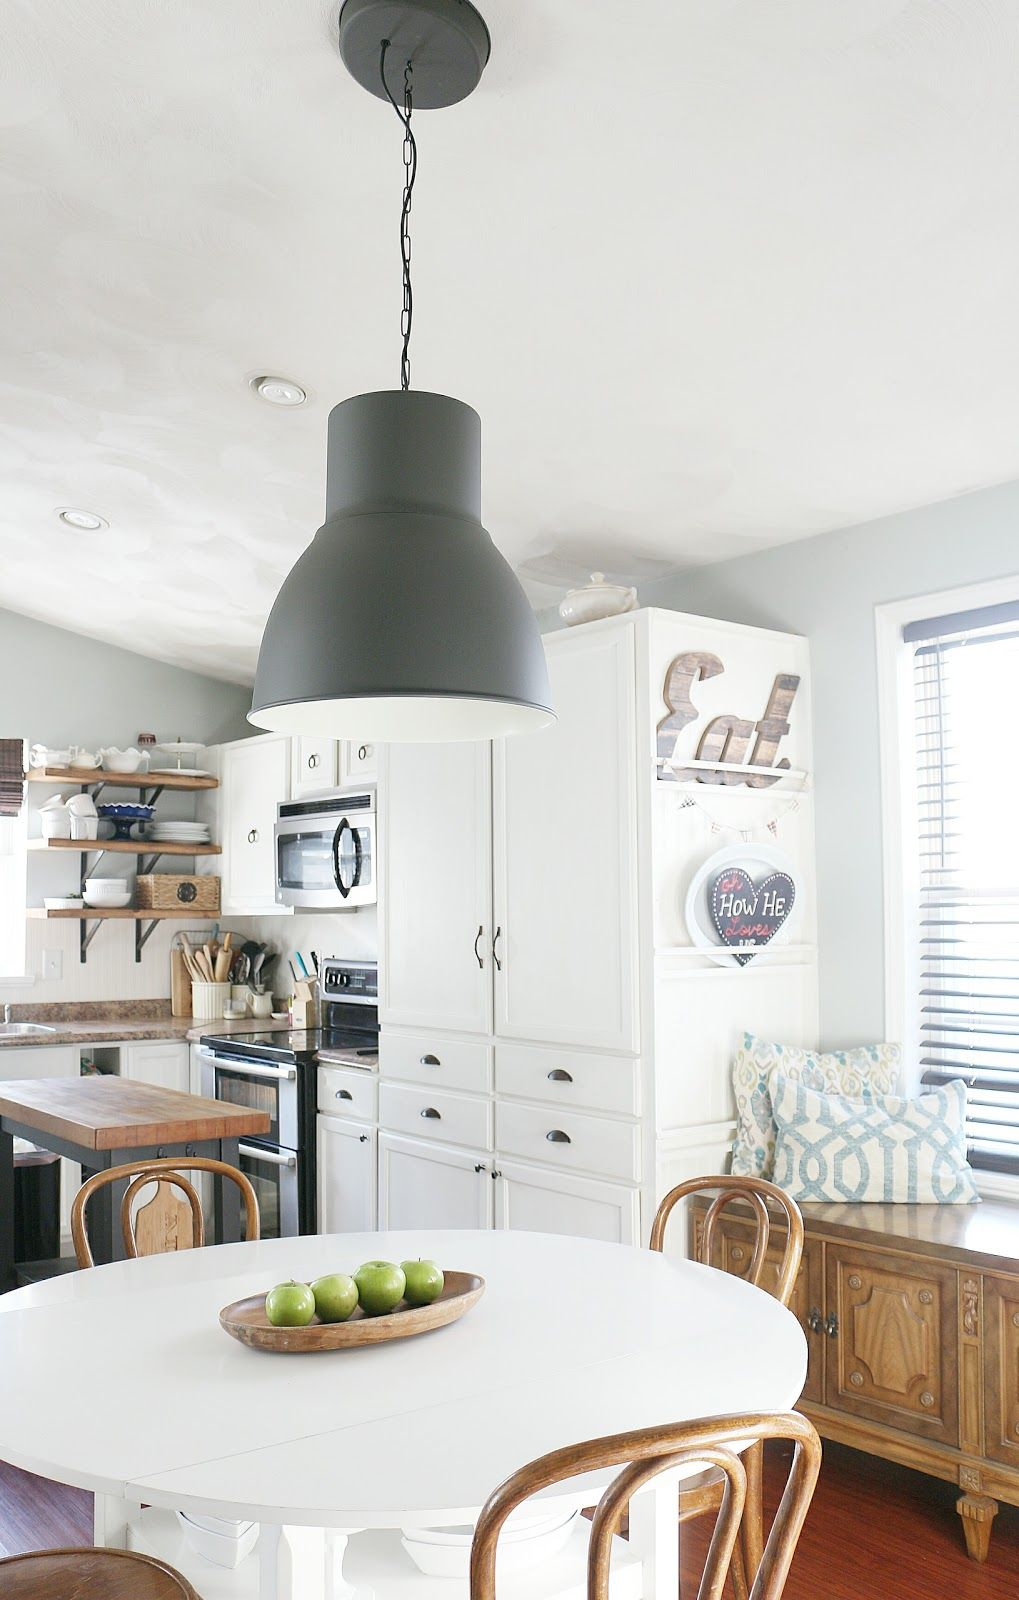 Ikea hektar lighting in eat in kitchen for the home pinterest ikea hektar lighting in eat in kitchen arubaitofo Image collections